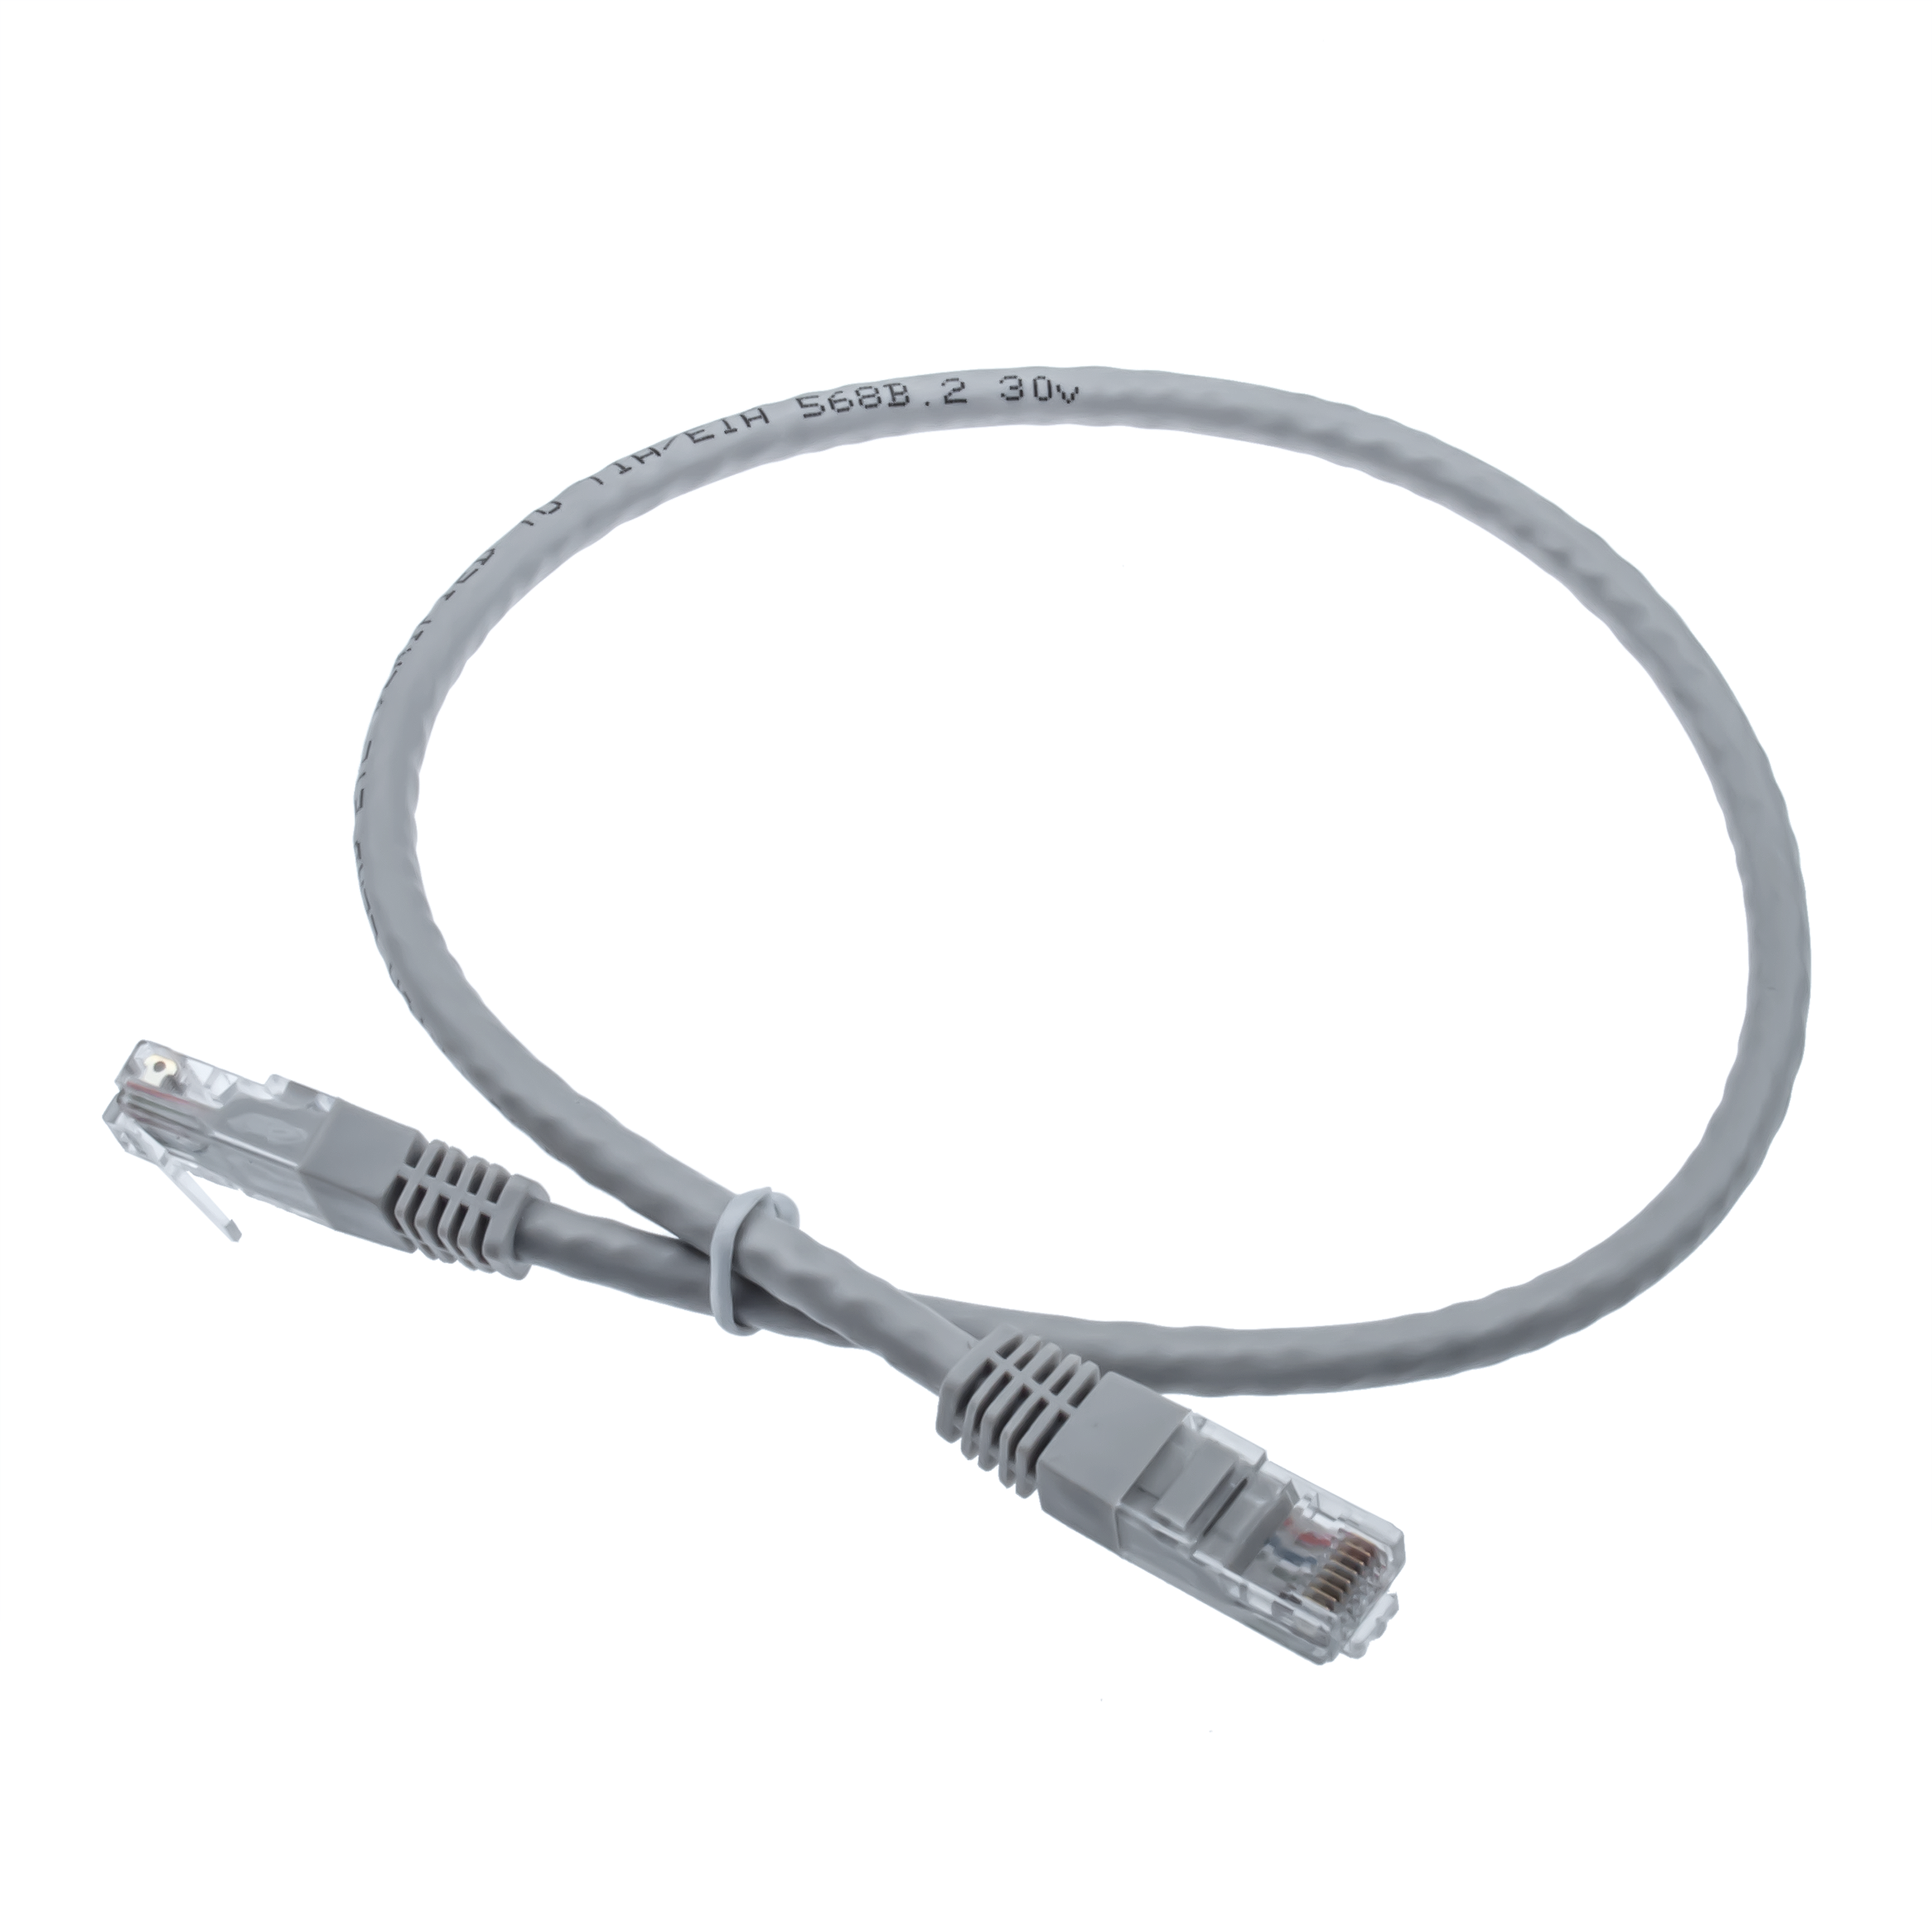 CAT6 Data Cable